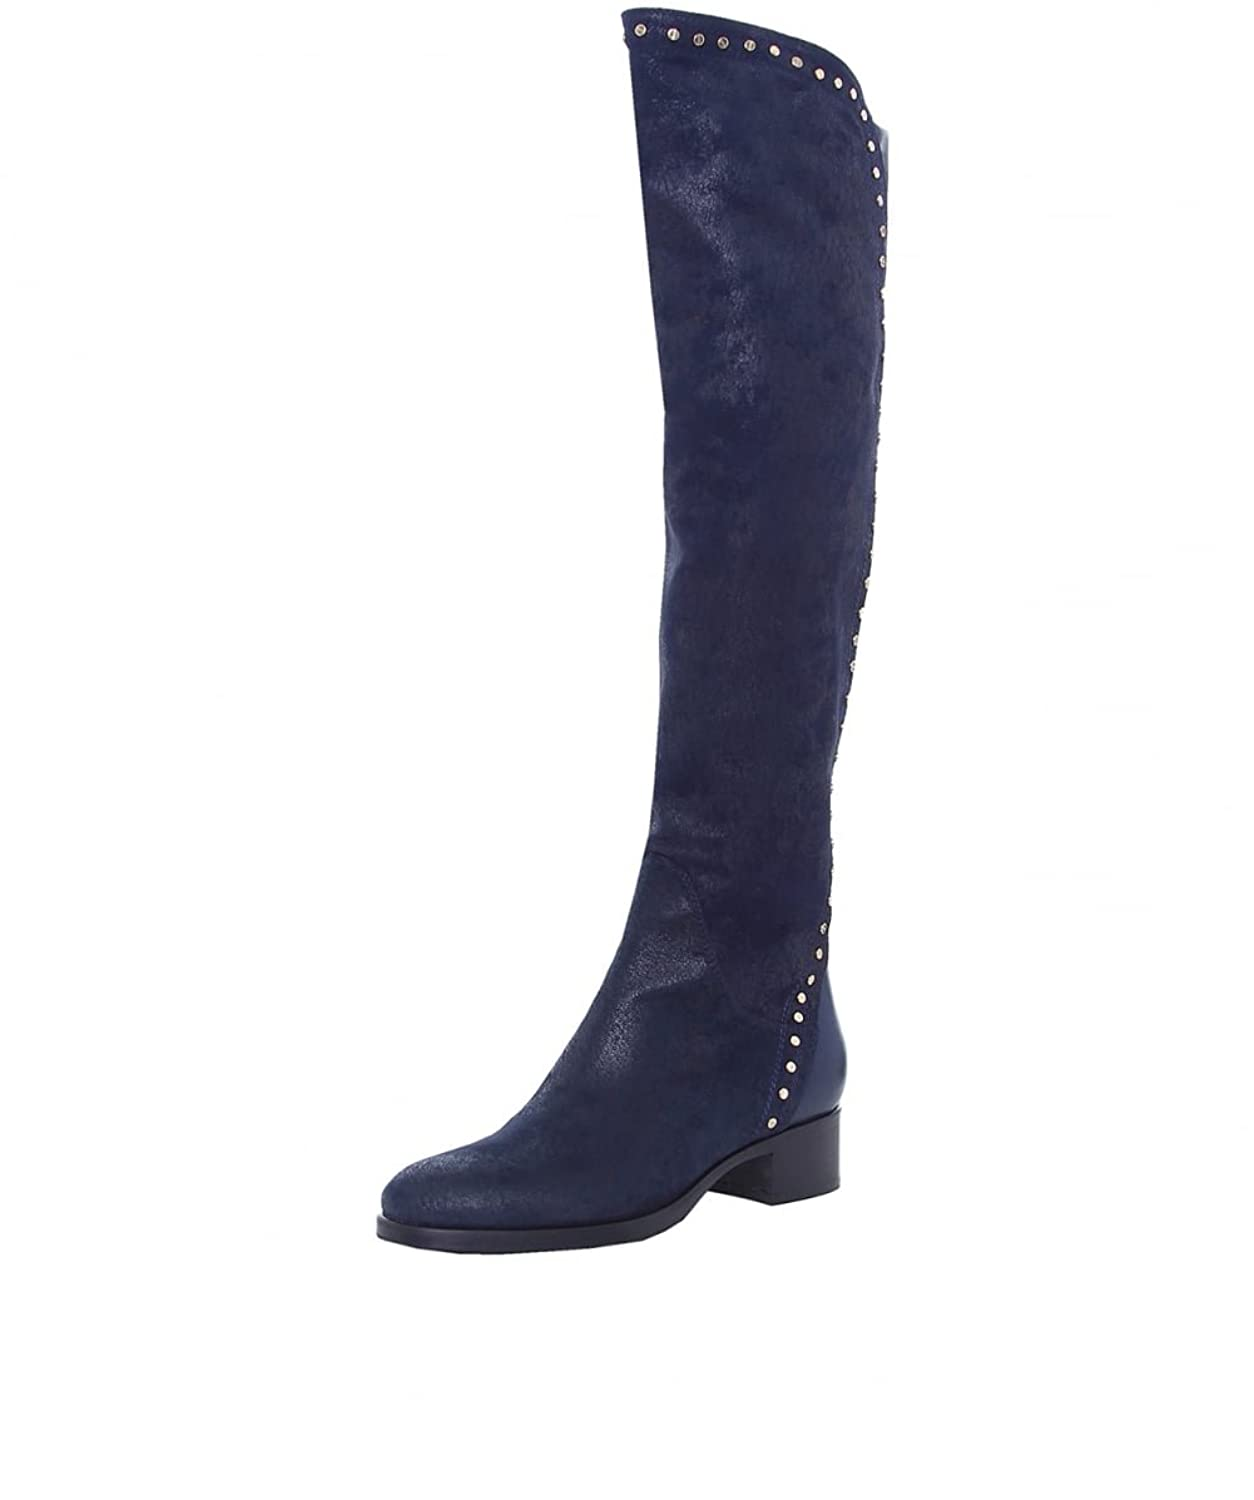 Le Pepe Women's Studded Suede Boots Oceano